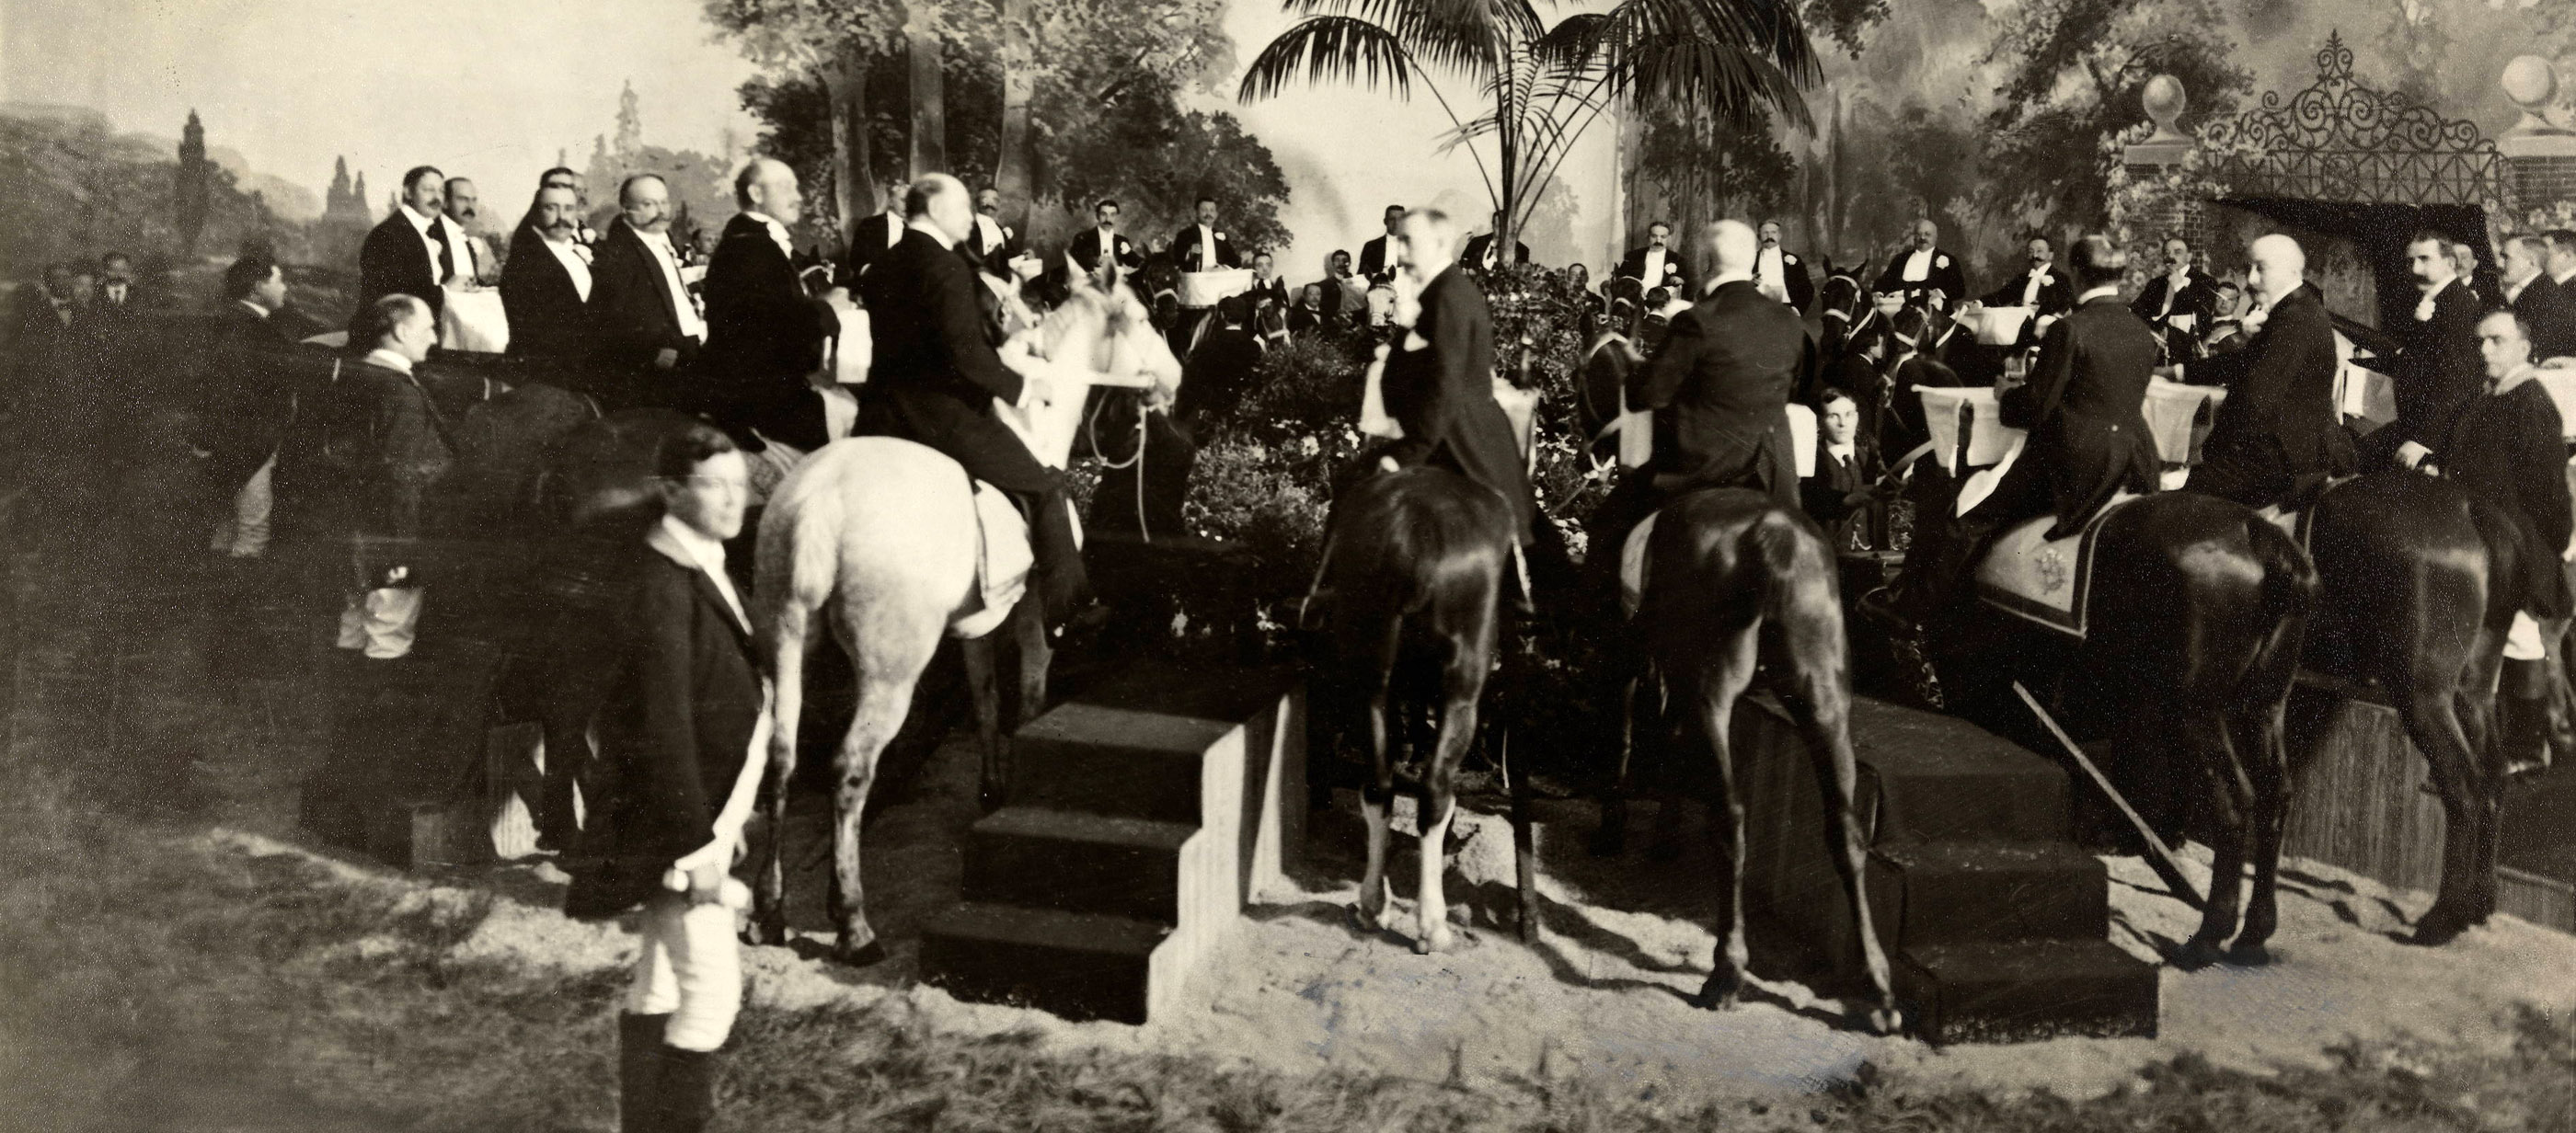 Dinner on horseback, hosted by industrialist C. K. G. Billings at the restaurant Sherry's, New York City, 1903. Each saddle was fitted with a tray and champagne bucket. The feast cost about $50,000.